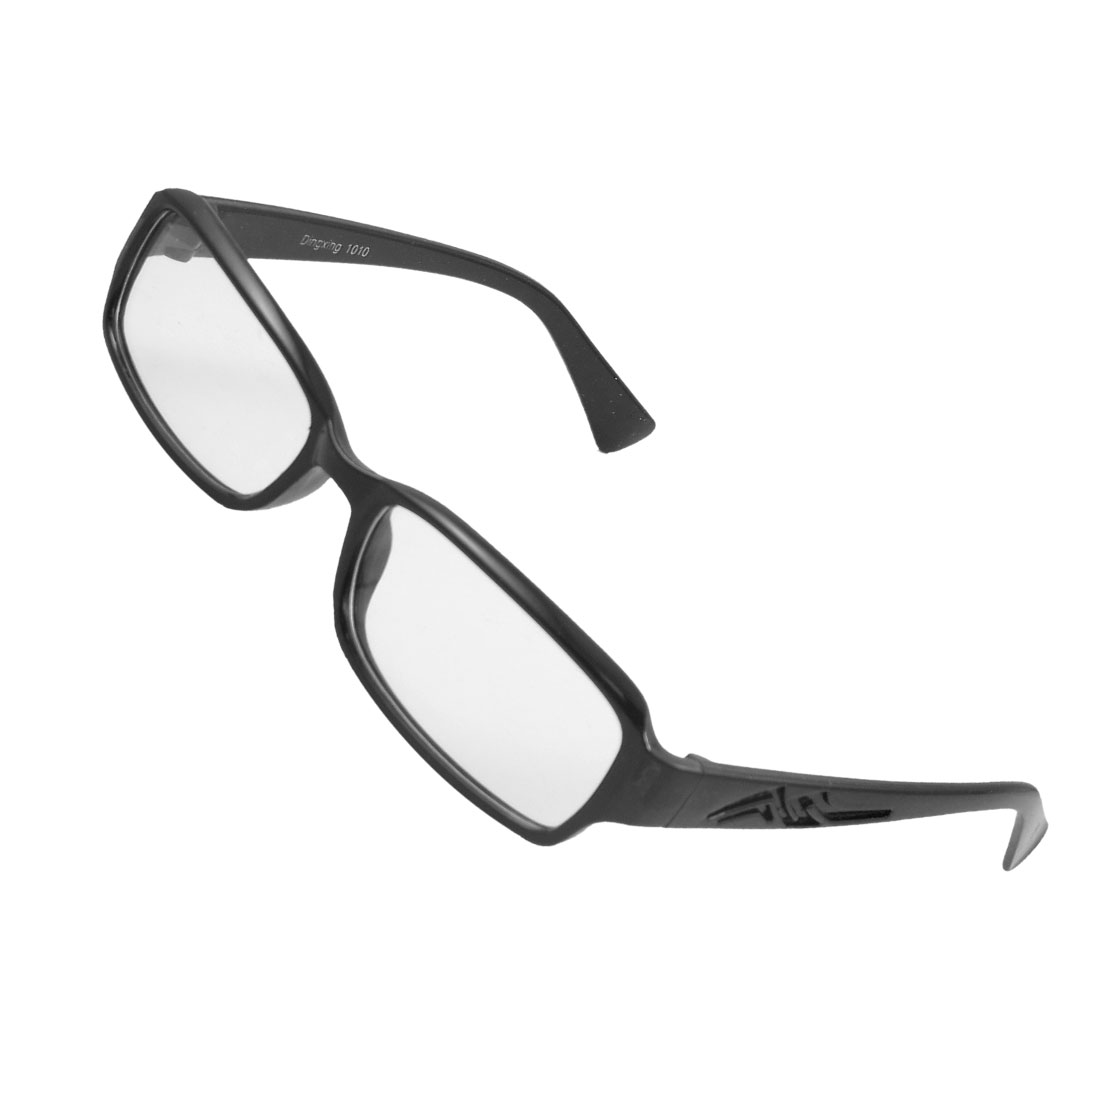 Lady Full Frame Carved Arm Plain Plano Eyeglass Black